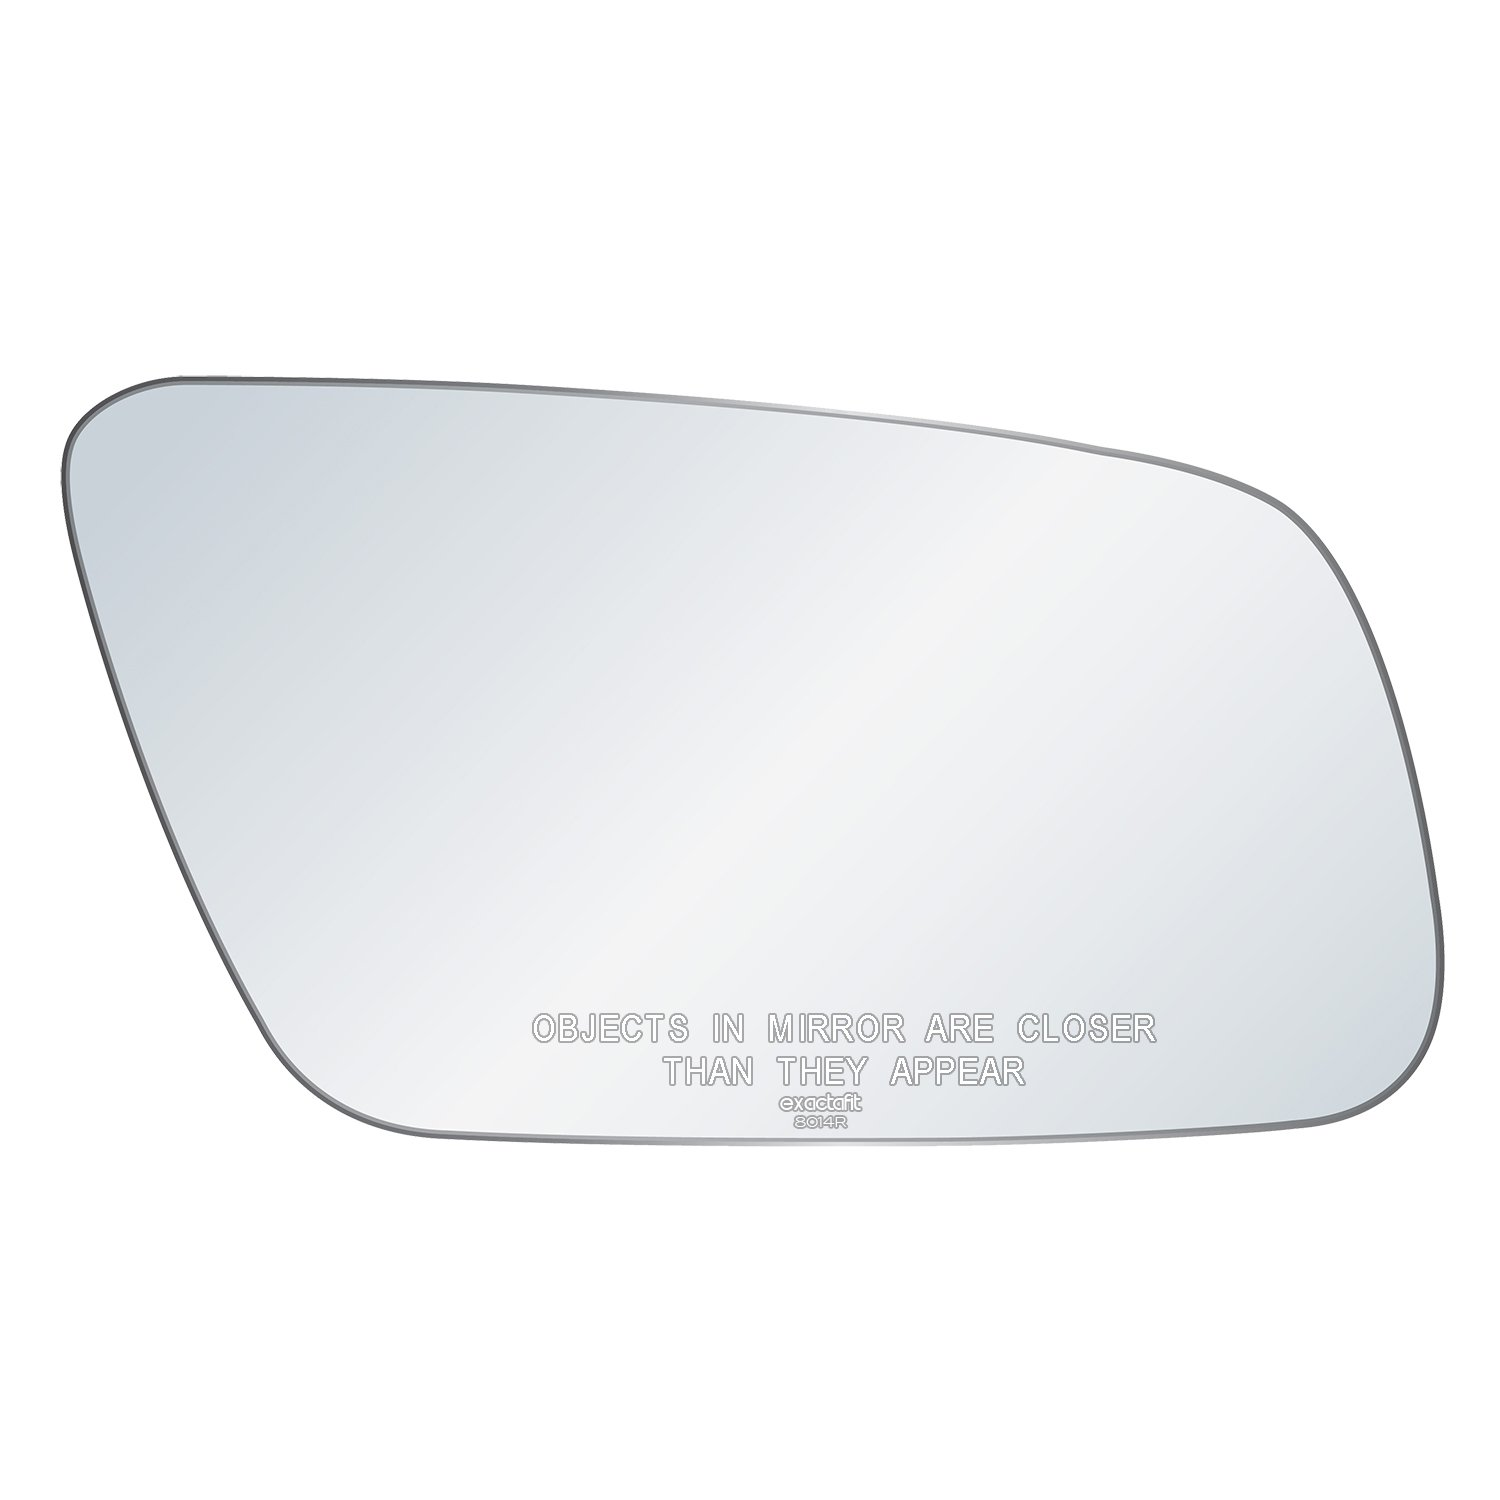 Left passenger Wide Angle side wing mirror glass for Audi A4 99-01 heated